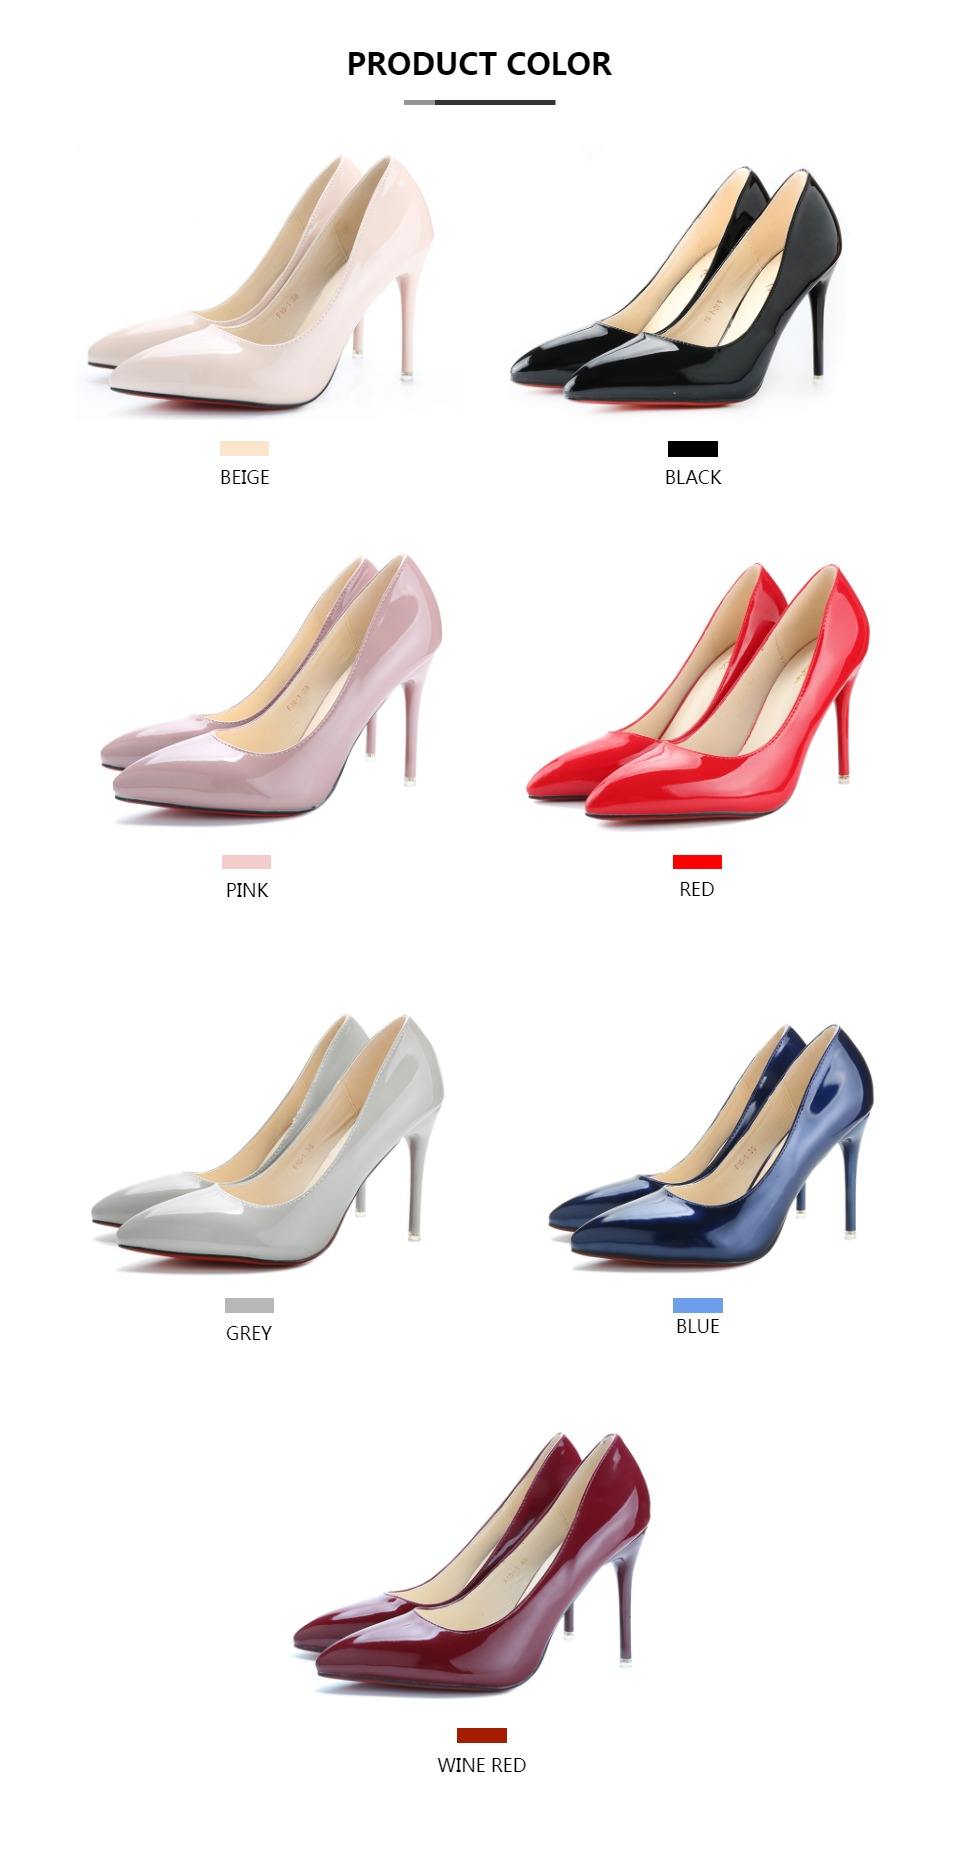 Ladies Shoes High Heels Patent Leather Classic Pumps Sexy Dress Prom Wedding Women PU Pointed Toe Beige Red Bottoms Shoes 1